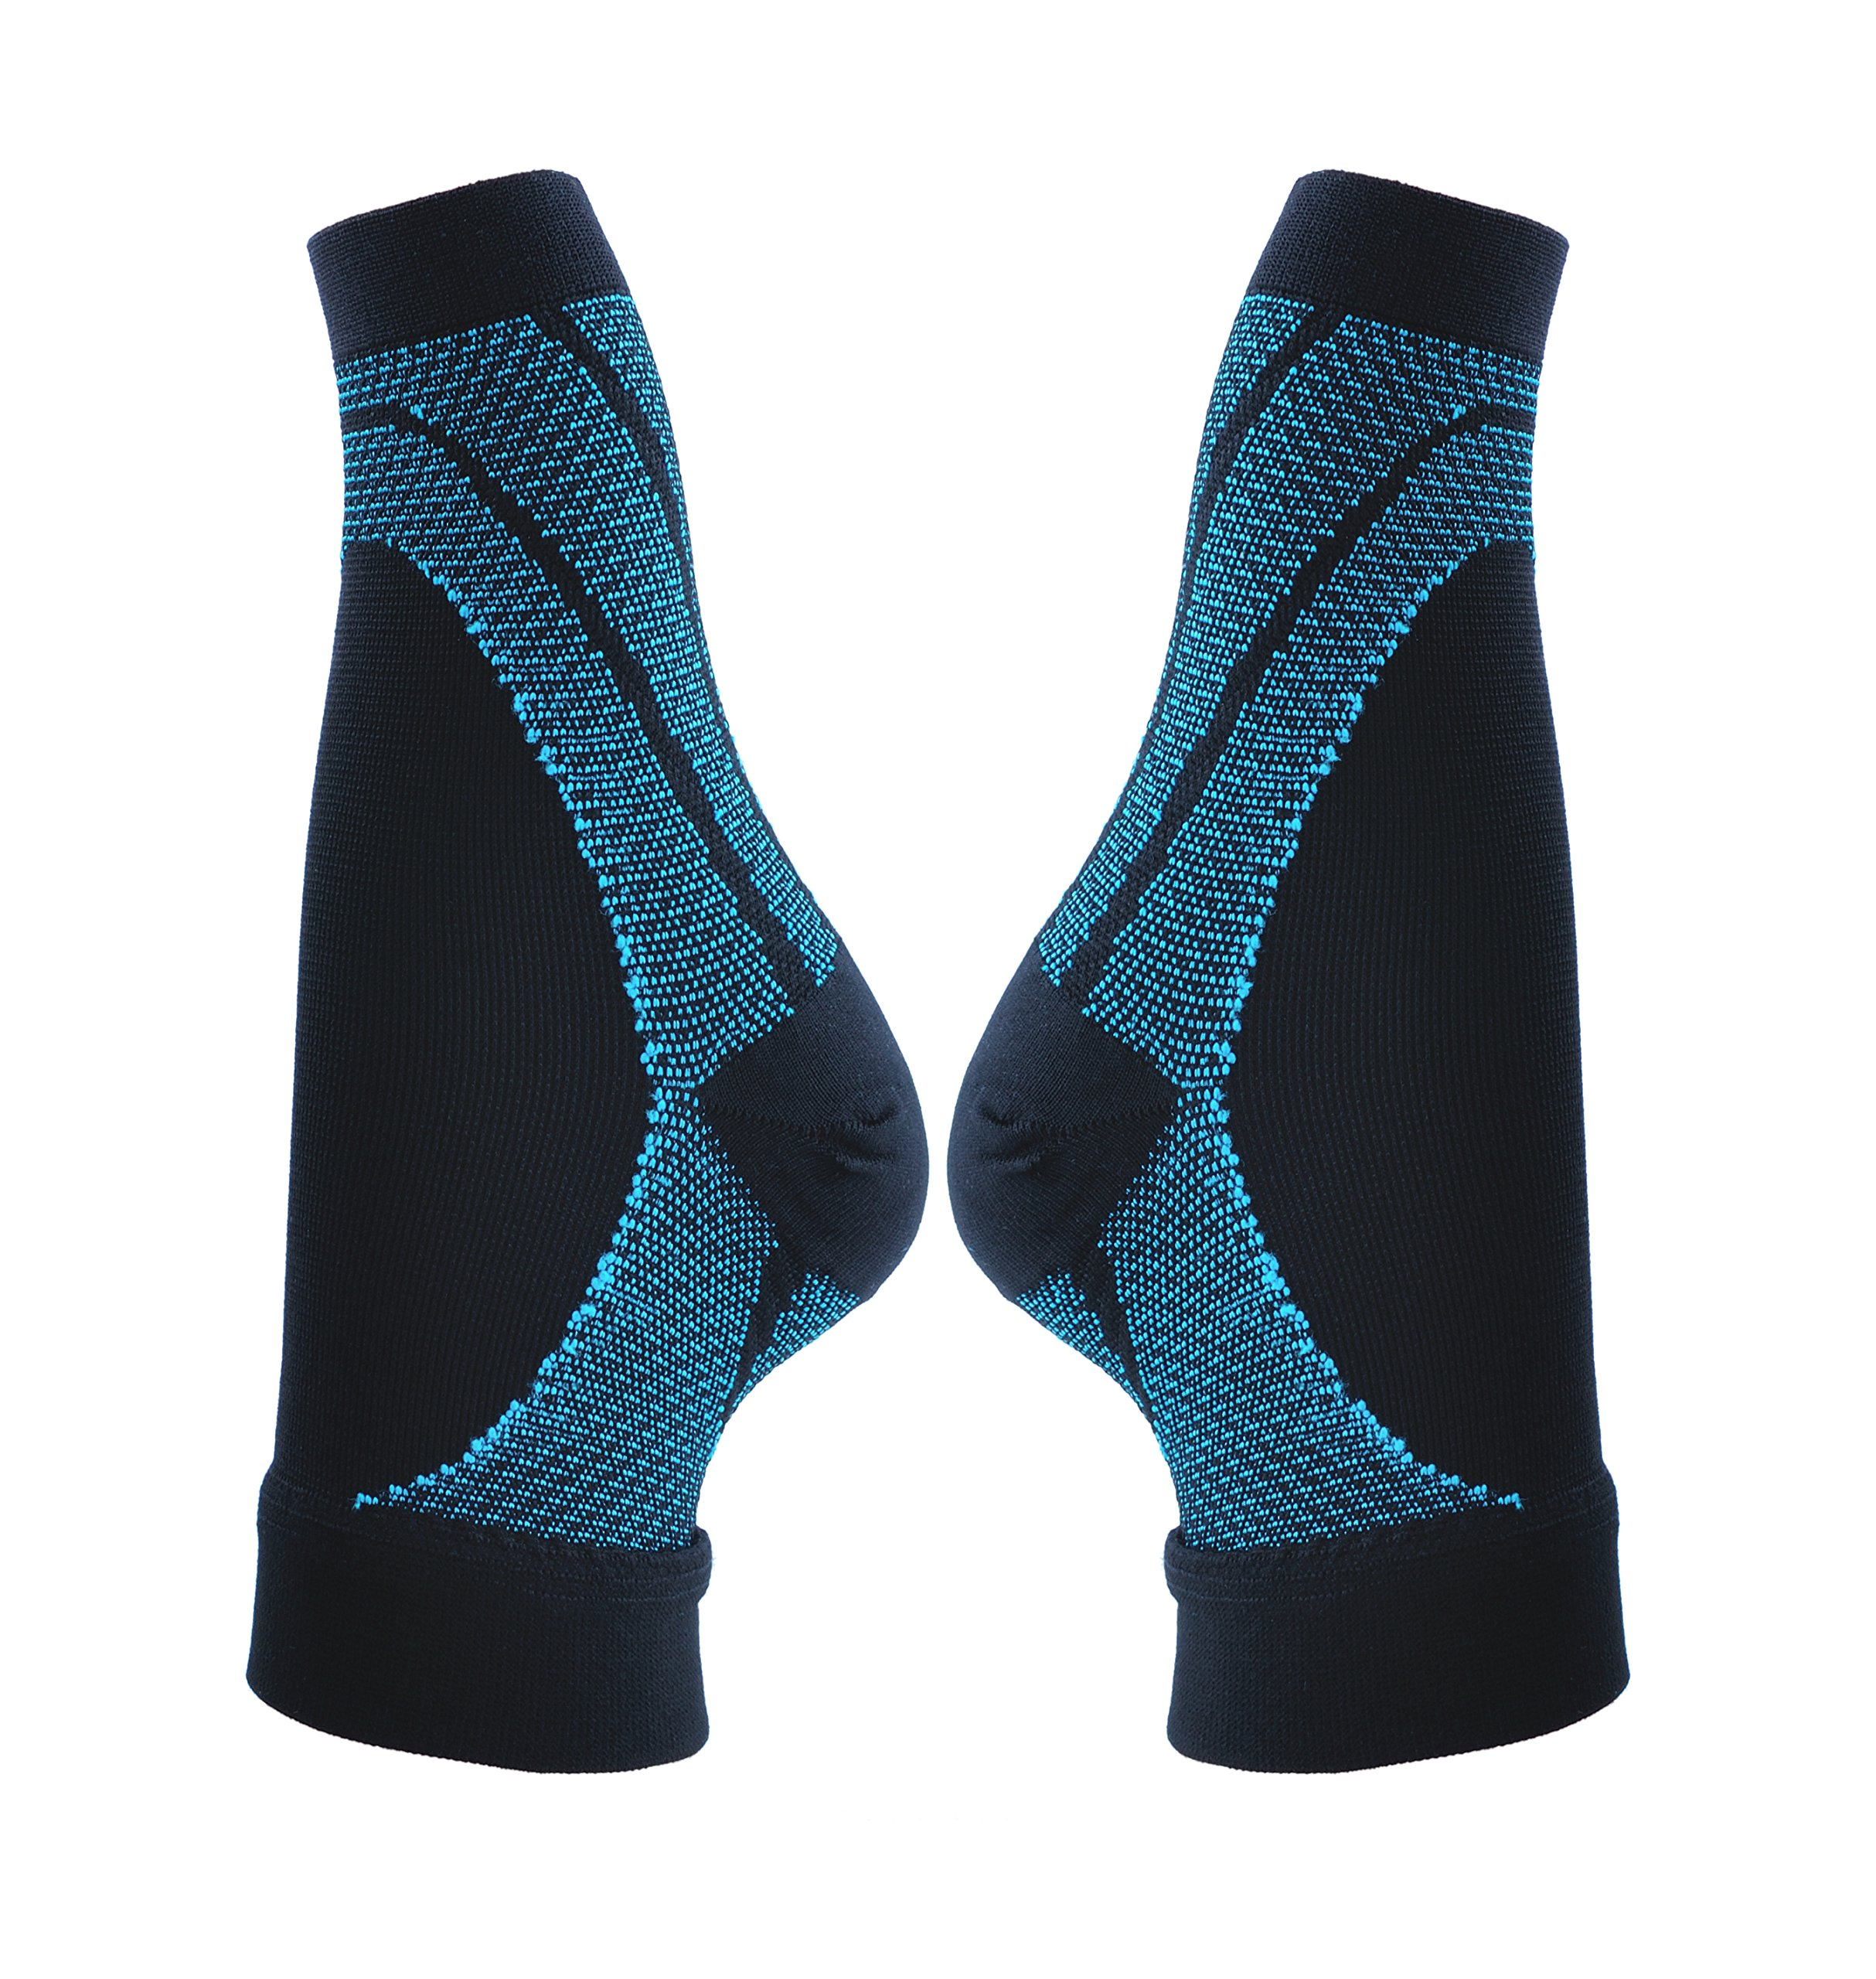 Compression Socks for Men and Women, with high quality and good elasticity (M)